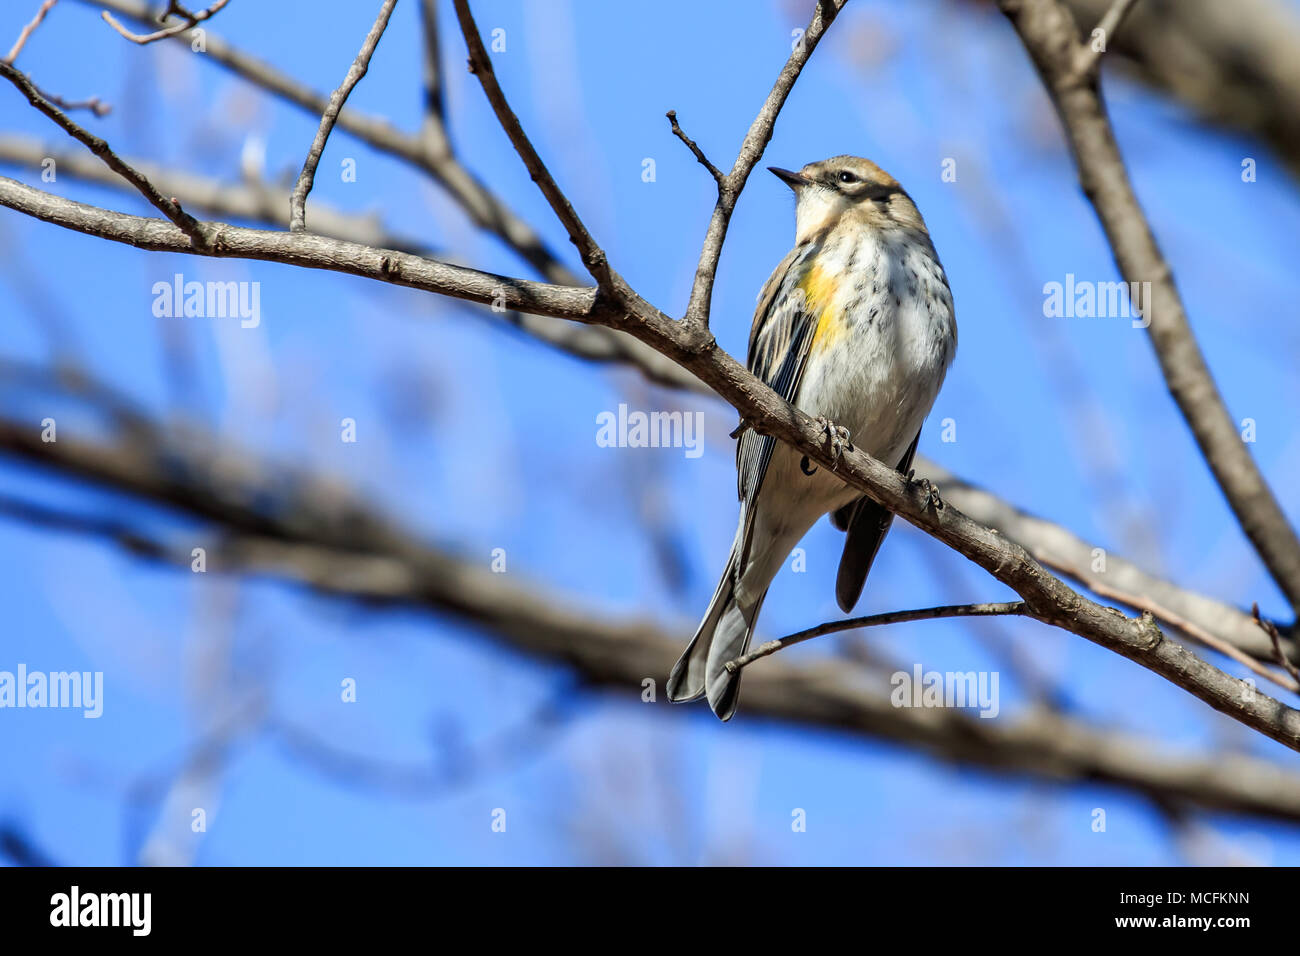 A Yellow Rumped Warbler (Setophaga coronata) perched in a bare winter tree. - Stock Image